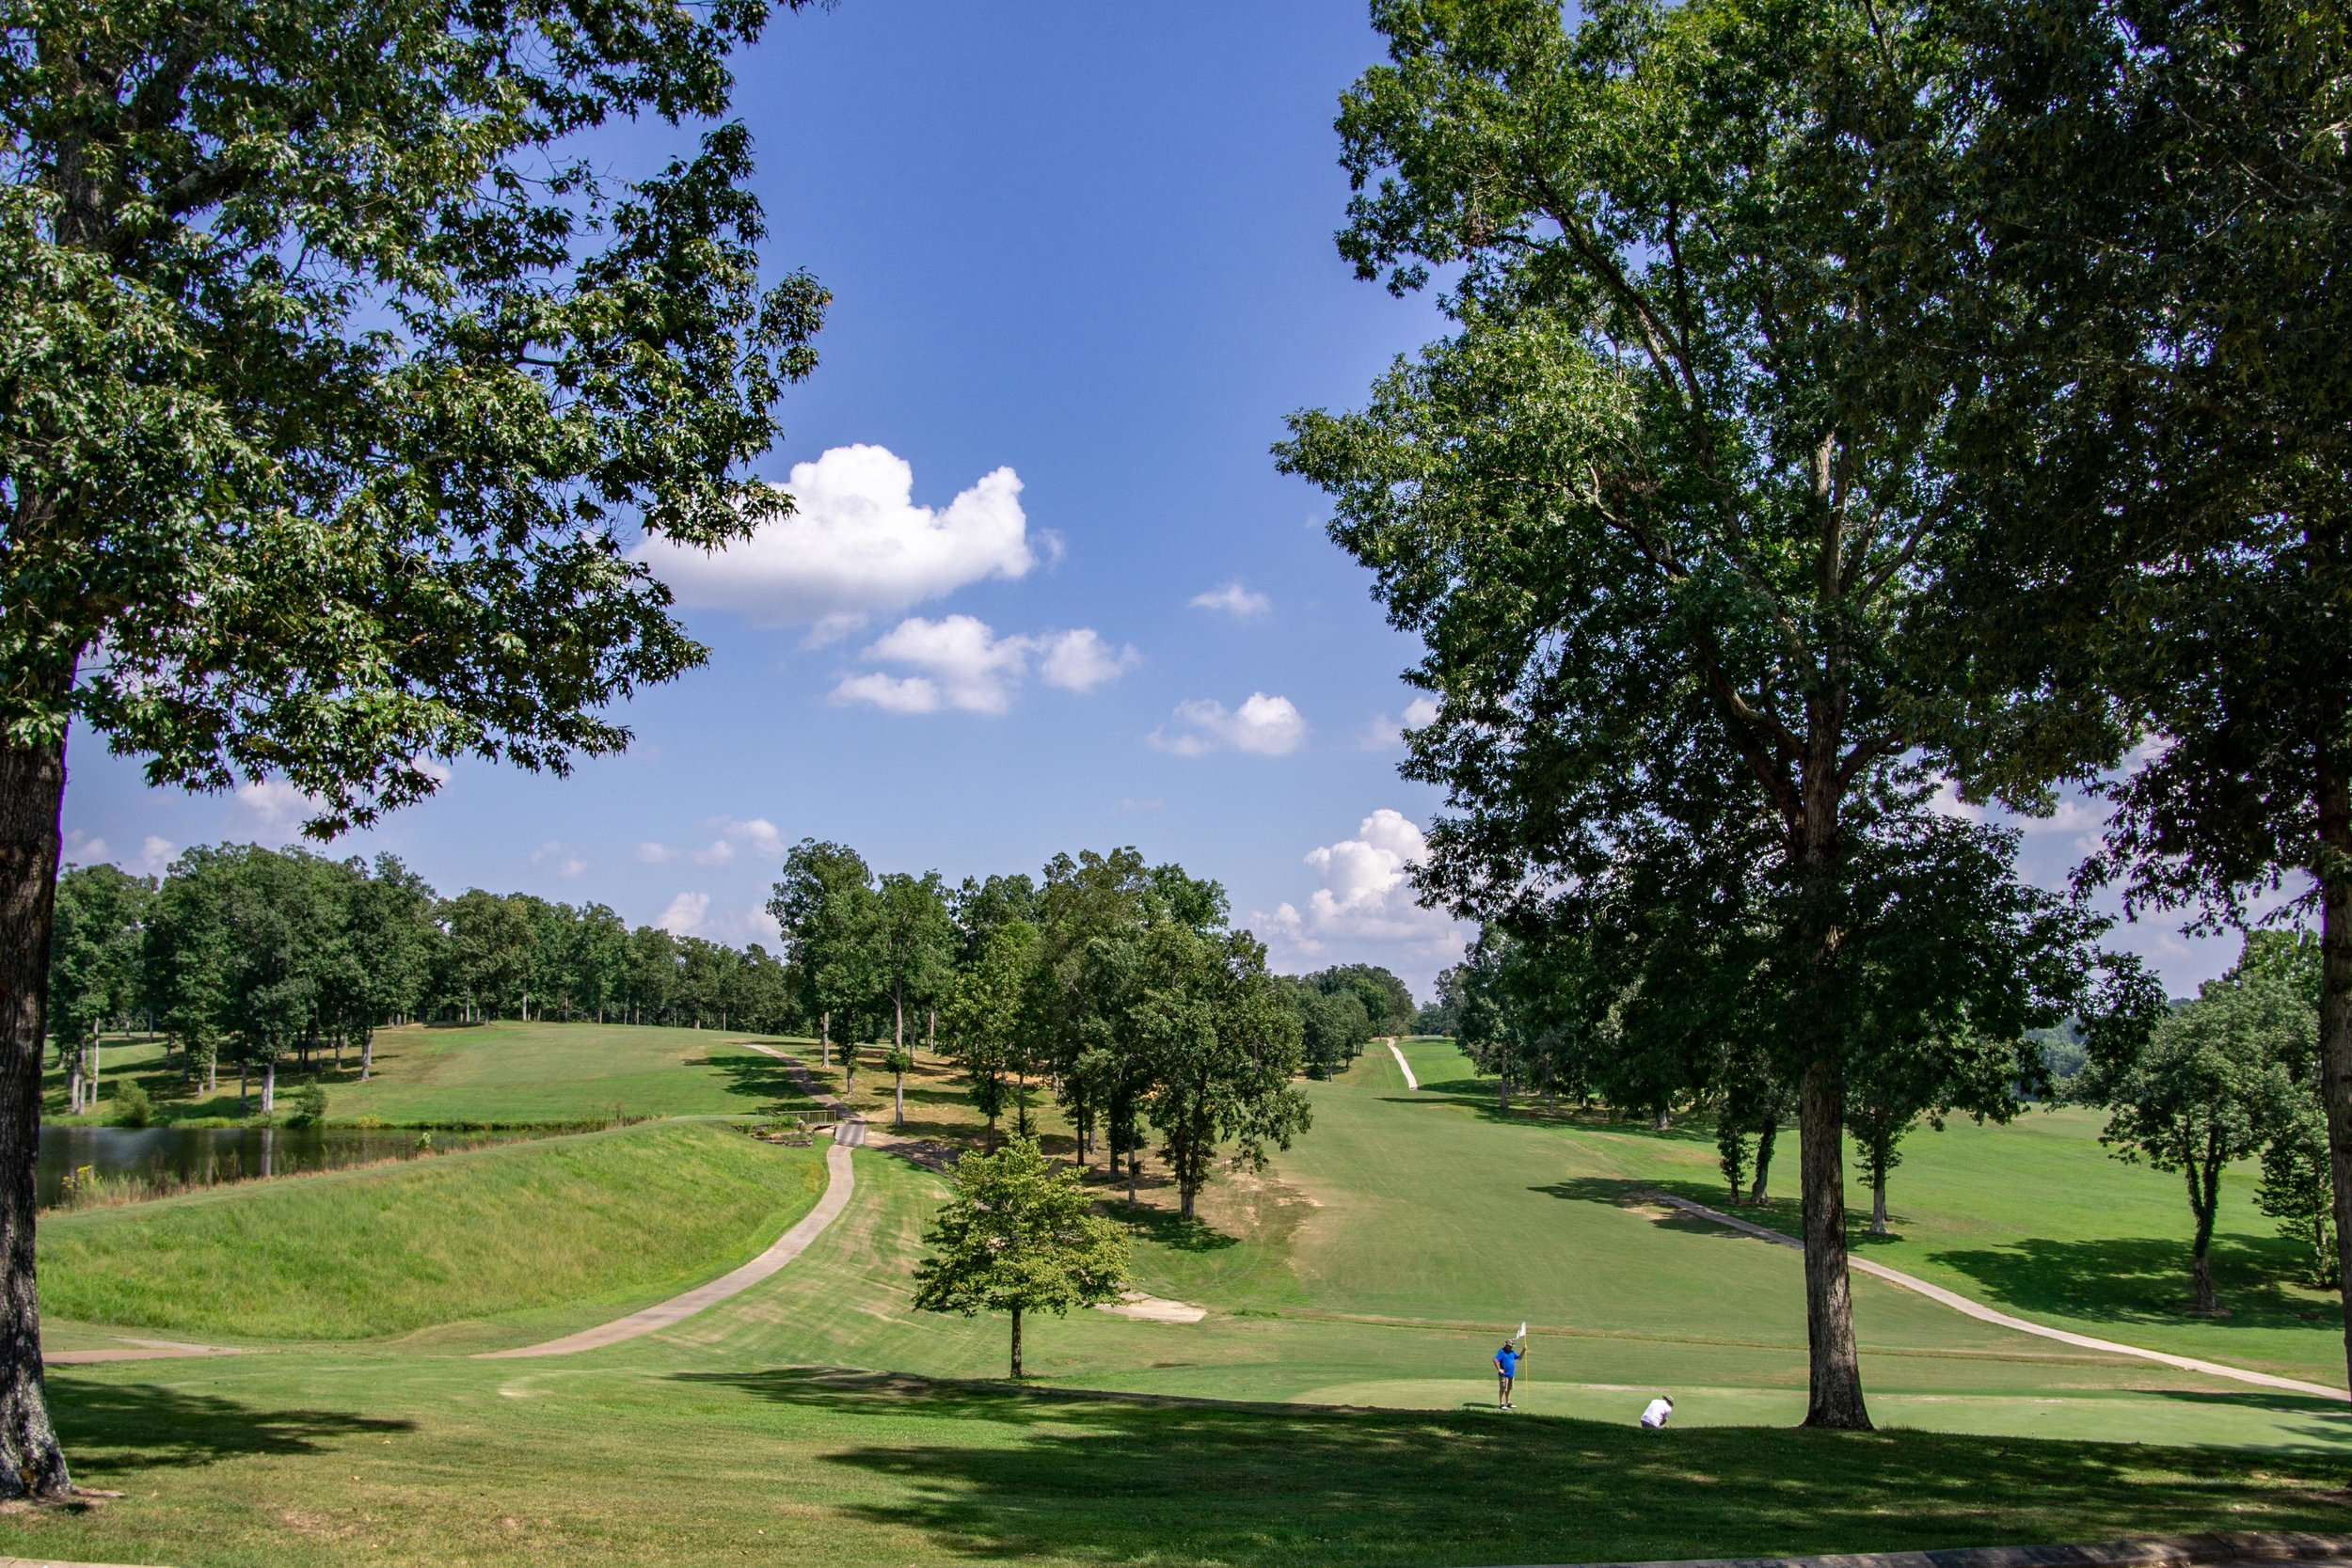 Dixie Oaks Golf Club Summertown TN Real Estate Photographer Pro -3.jpg